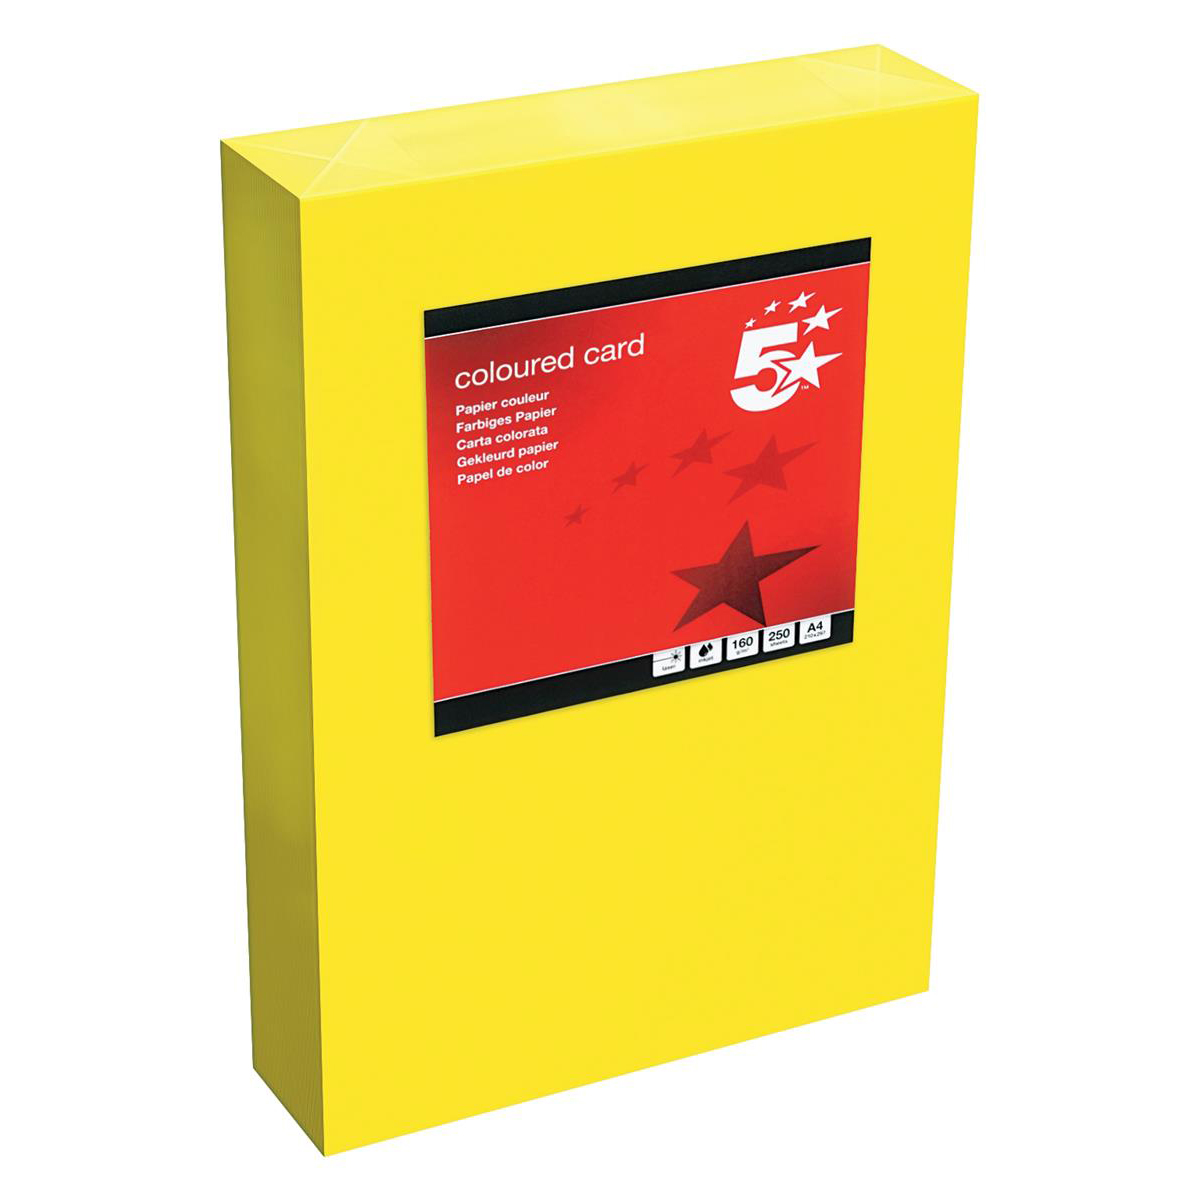 5 Star Office Coloured Card Tinted 160gsm A4 Deep Yellow Pack 250